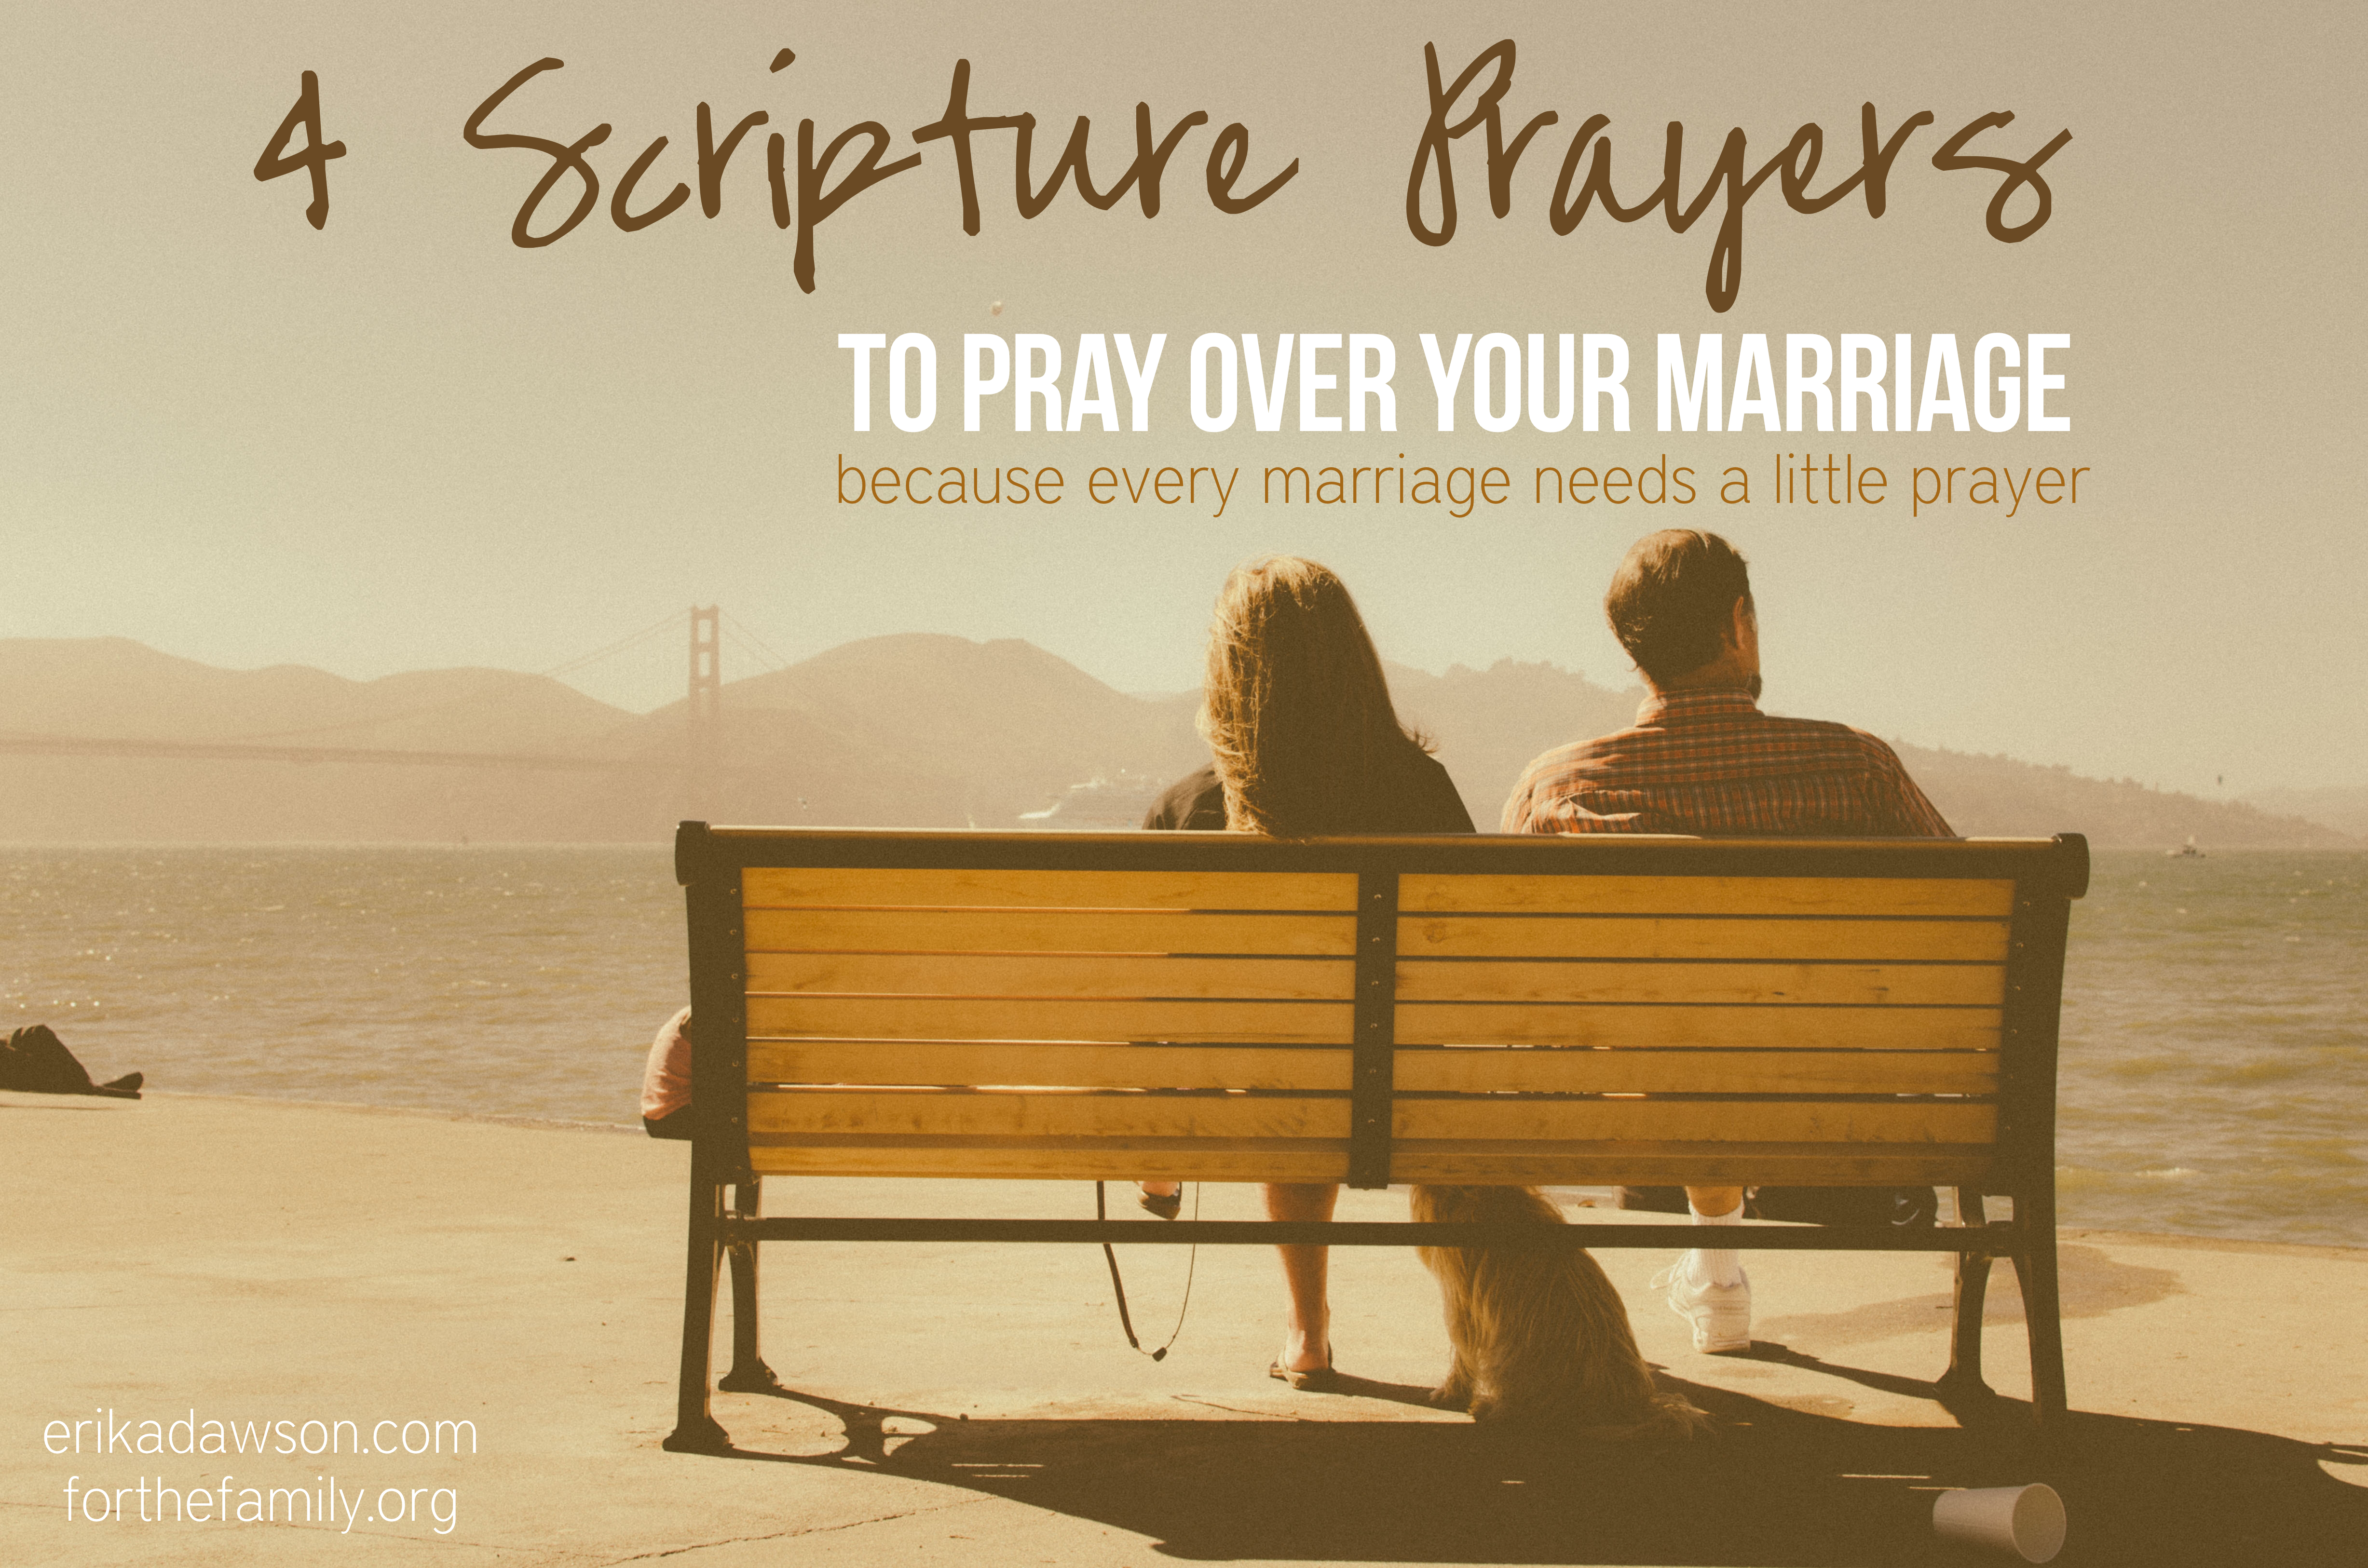 4 scriptures to pray for your marriage for the family